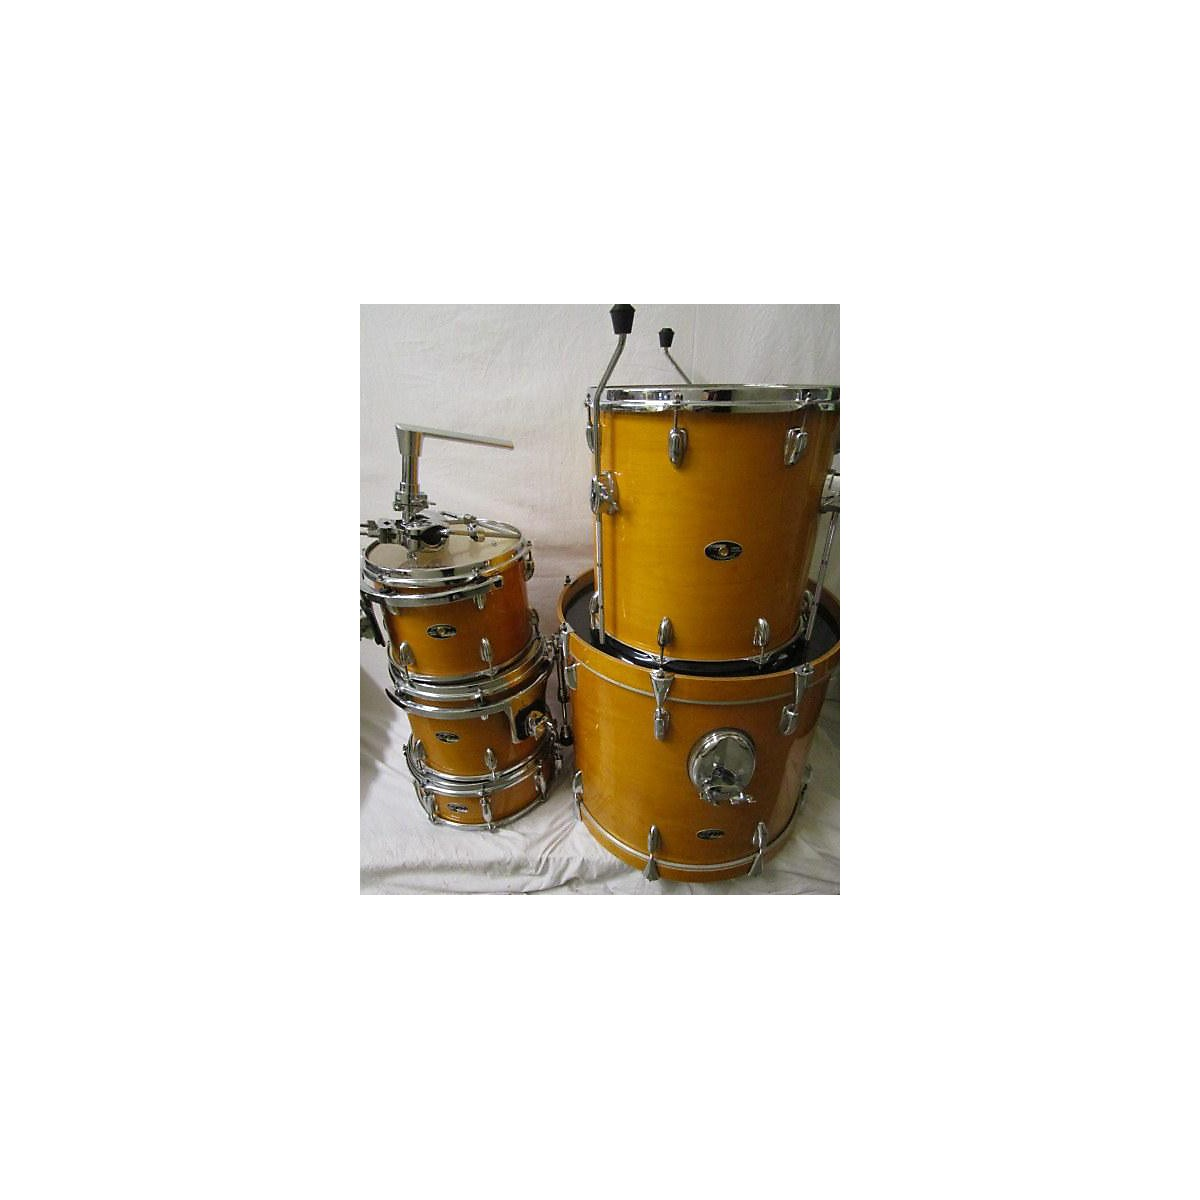 Slingerland Concert King Drum Kit